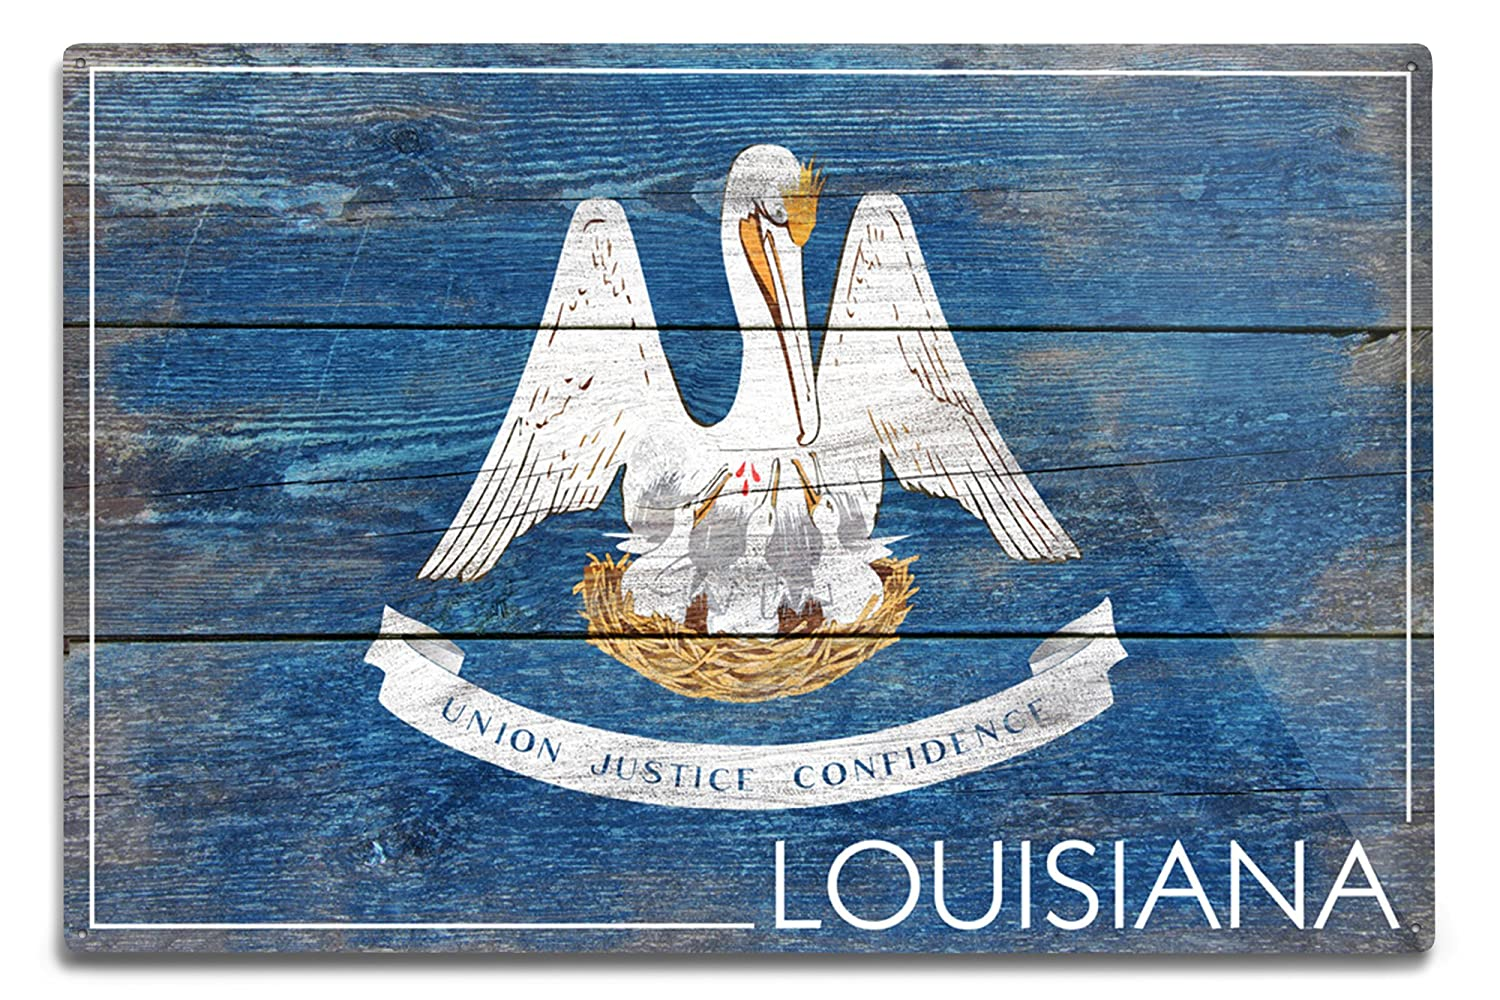 激安先着 素朴なLouisiana State Flag Canvas Tote Bag Metal 12 Sign LANT-52550-TT B06Y19G49H 12 x 18 Metal Sign 12 x 18 Metal Sign, ガーデン資材はエクステルホームズ:b737534c --- pizzaovens4u.com